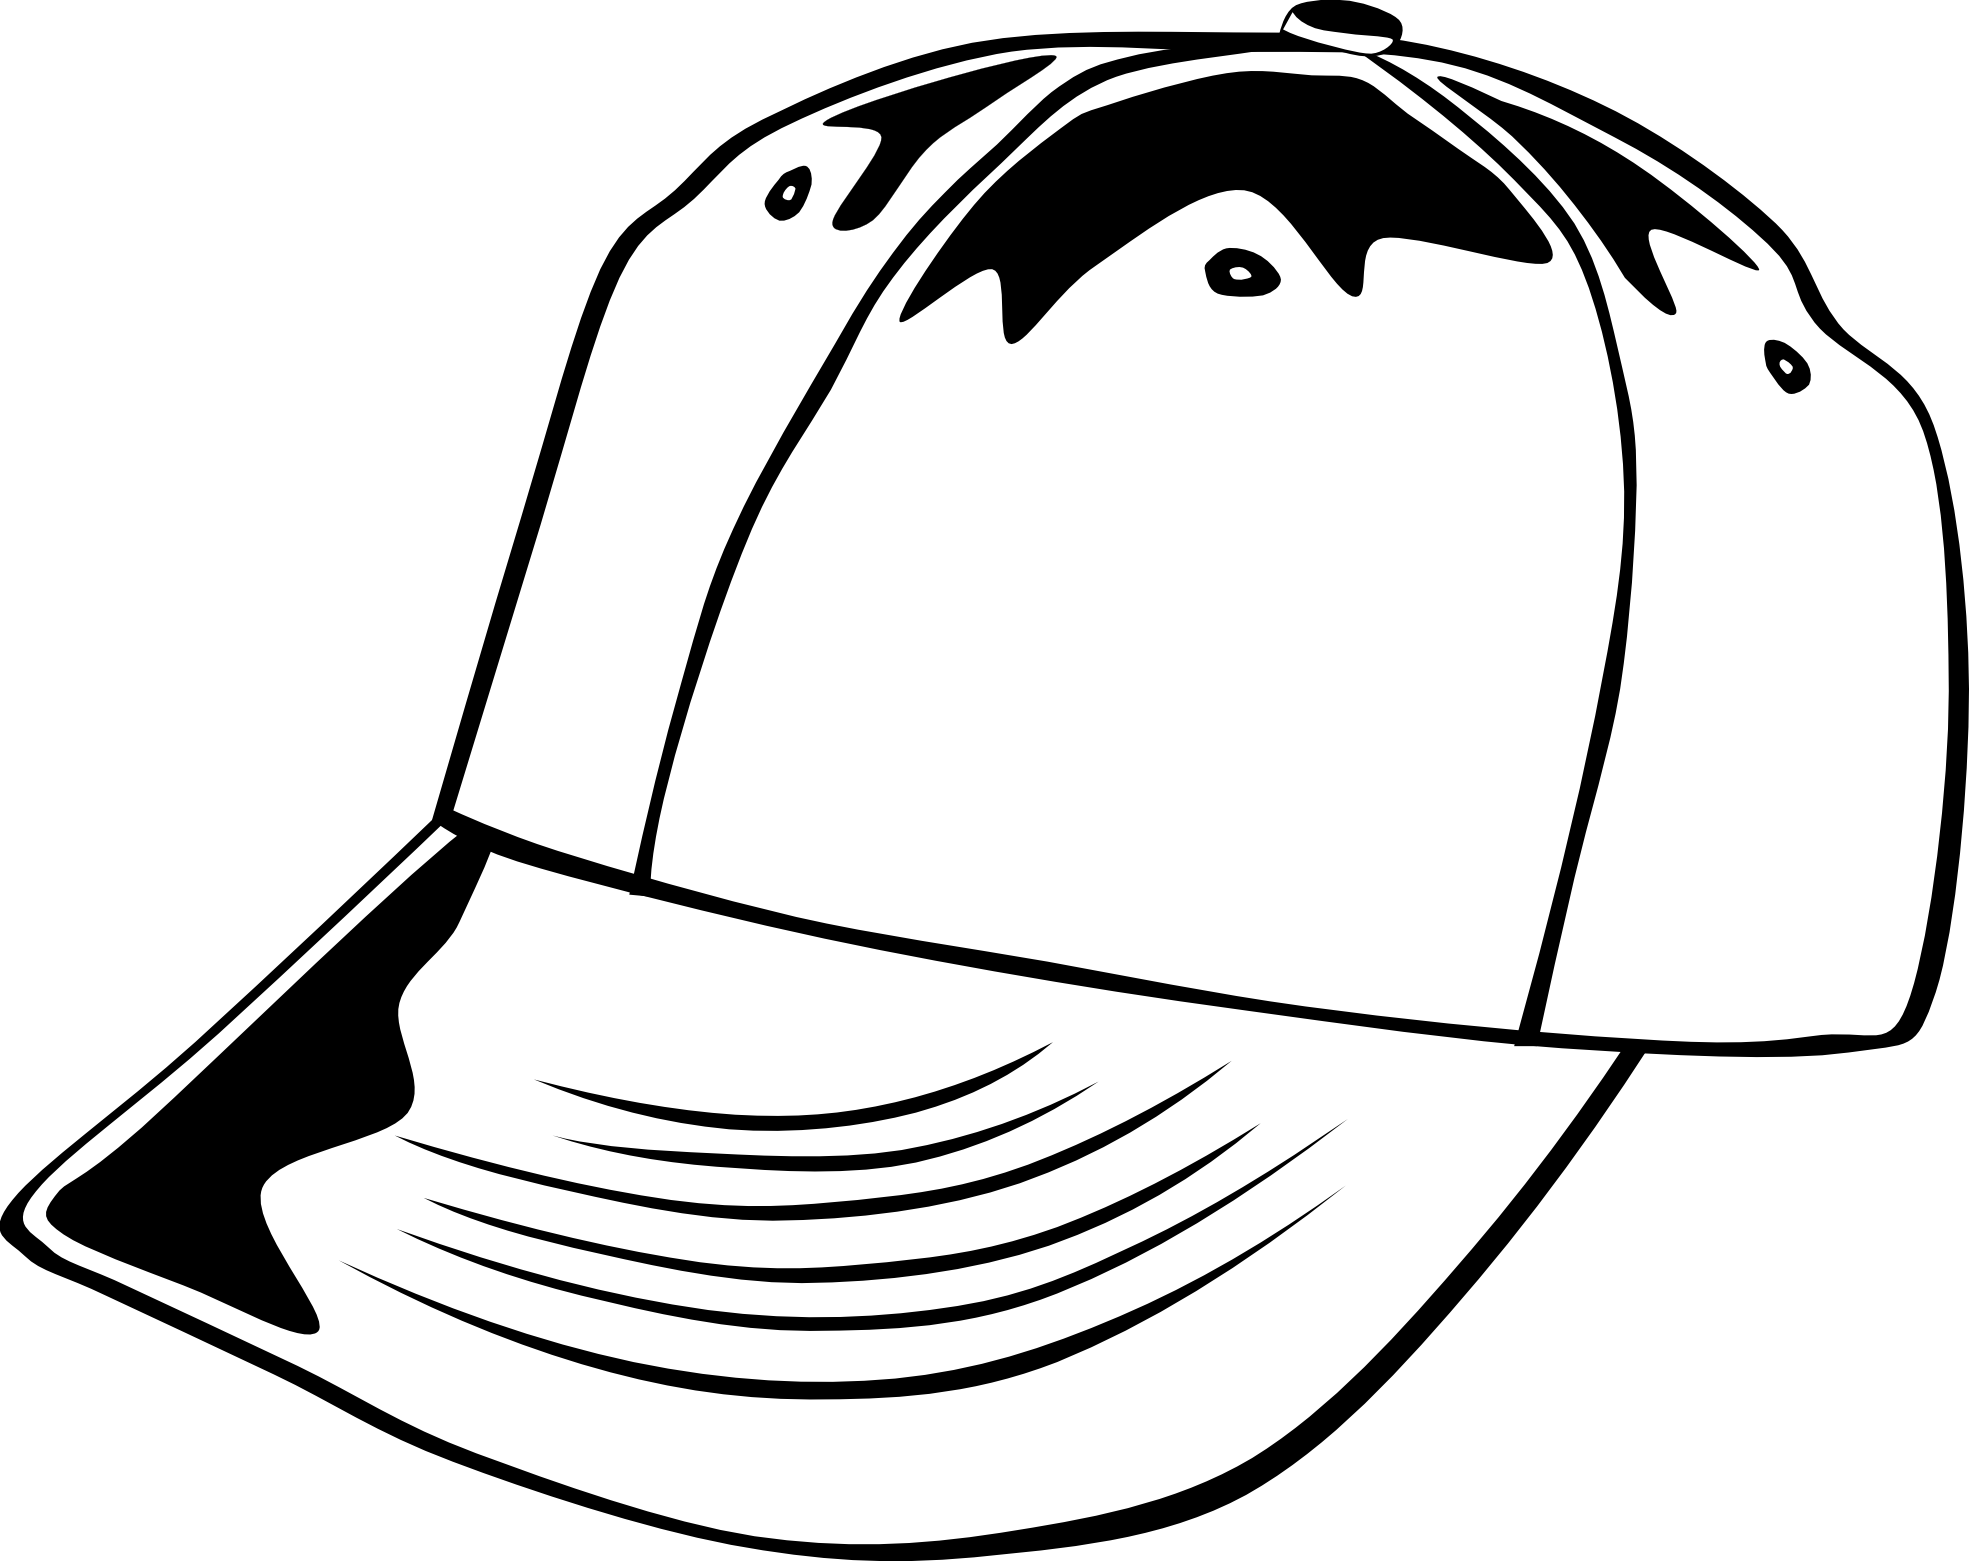 Baseball Hat Image Of Baseball Cap Clipa-Baseball hat image of baseball cap clipart 1 hat free 2-9